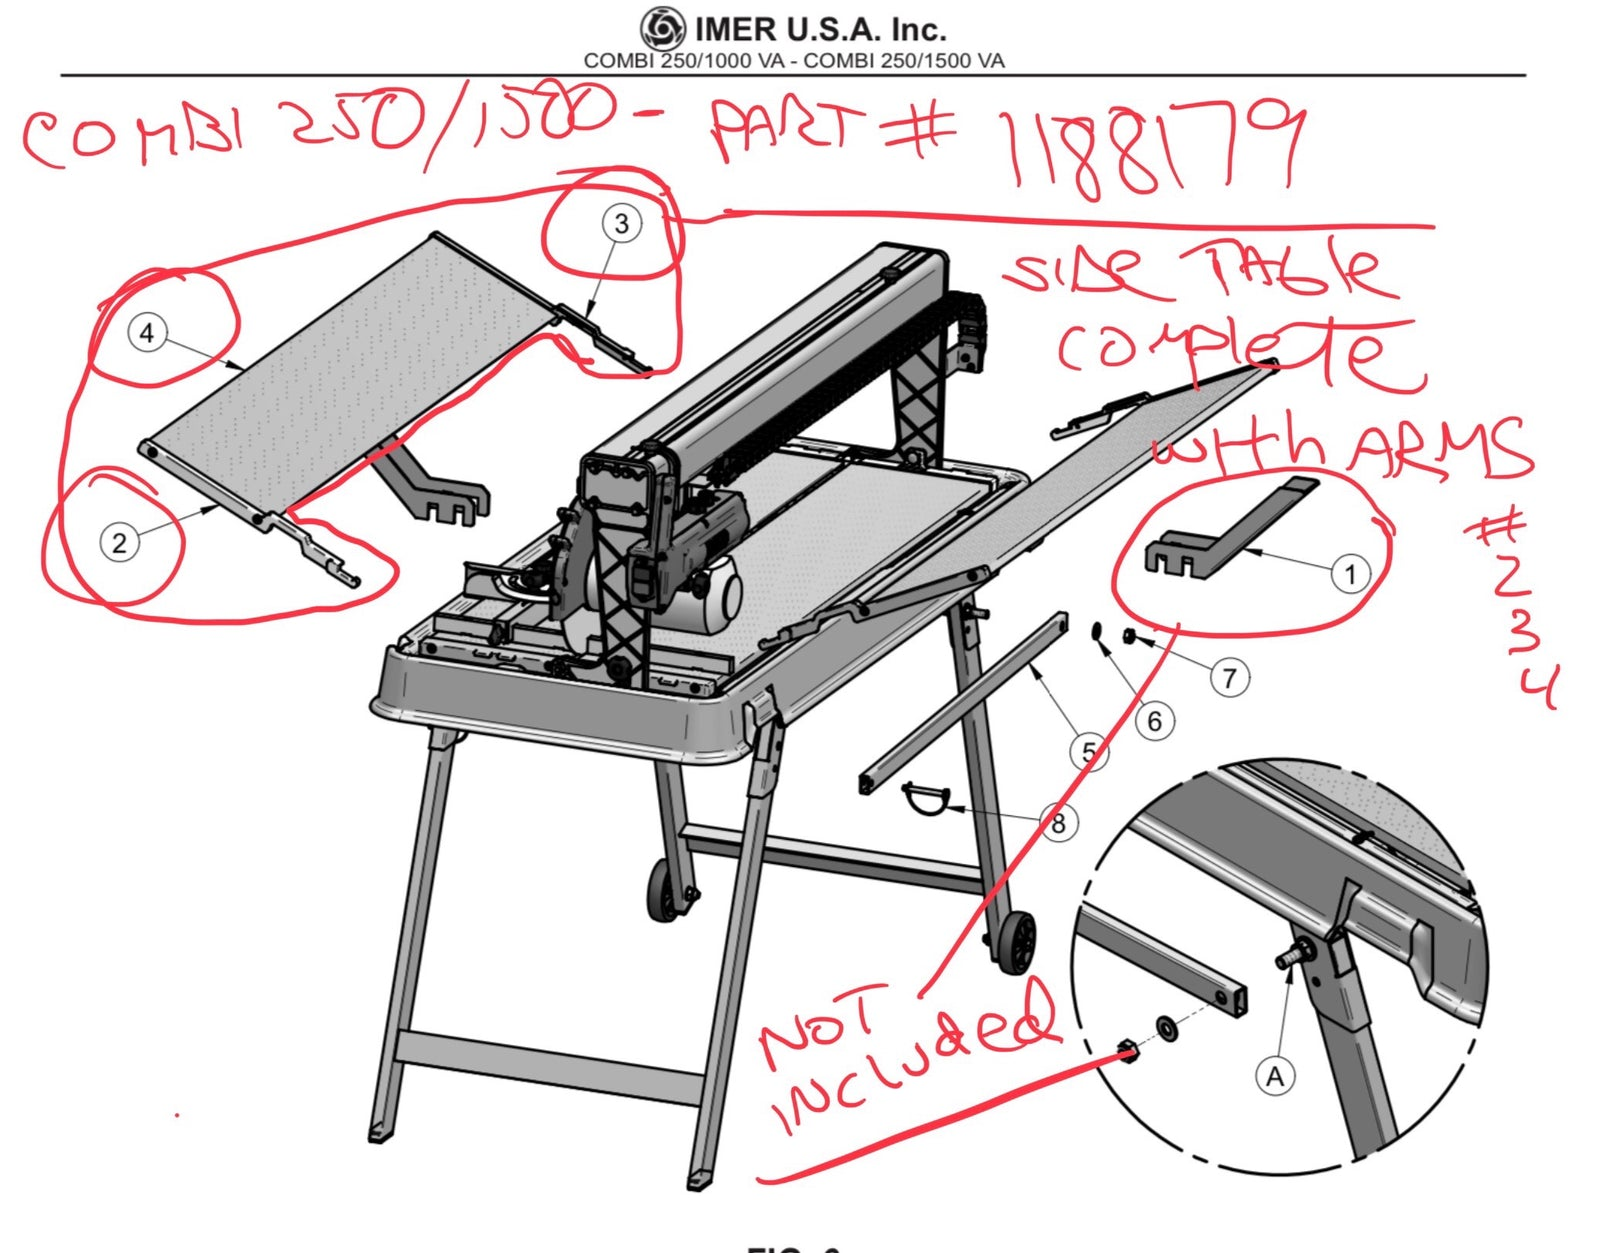 Part Number 1188179 - Side Table Complete with arms for IMER Combi 250/1500 Ultra Large Format Tile Saw